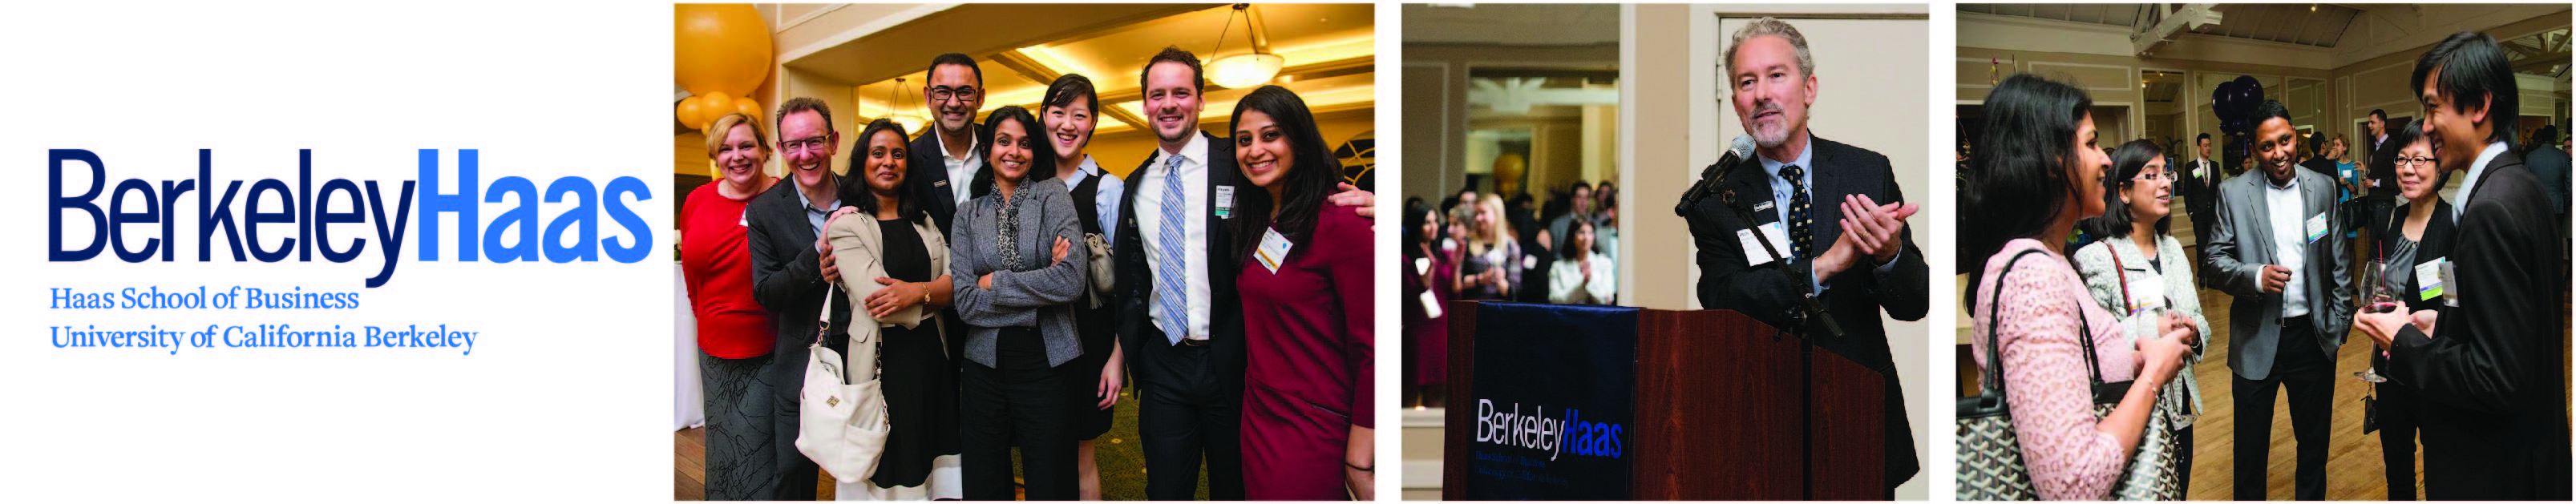 18th Annual Berkeley-Haas Celebration in Silicon Valley